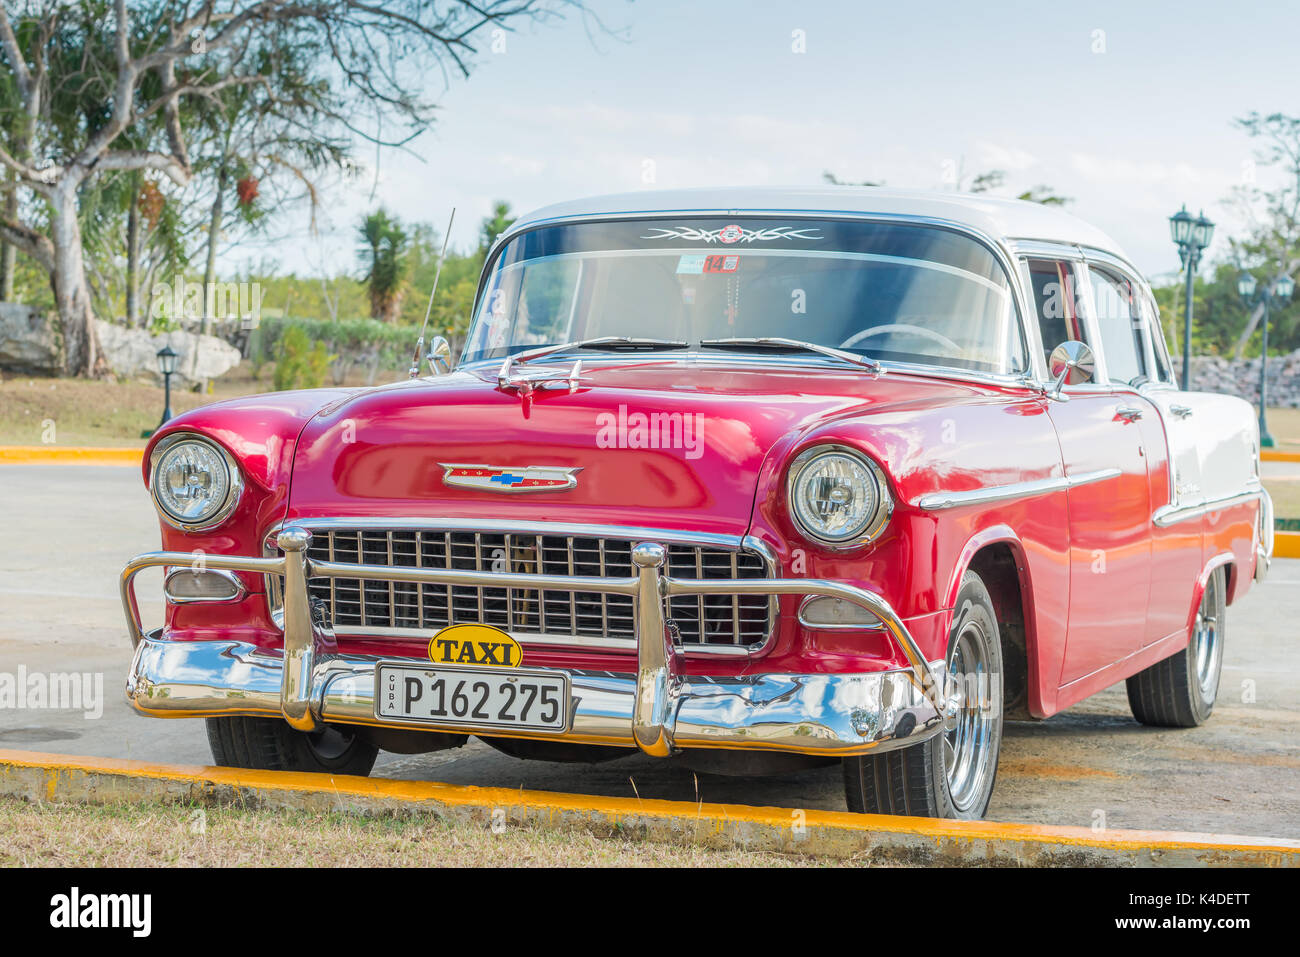 Restored 1956 red and white Chevrolet now used as a taxi in Cuba. Stock Photo